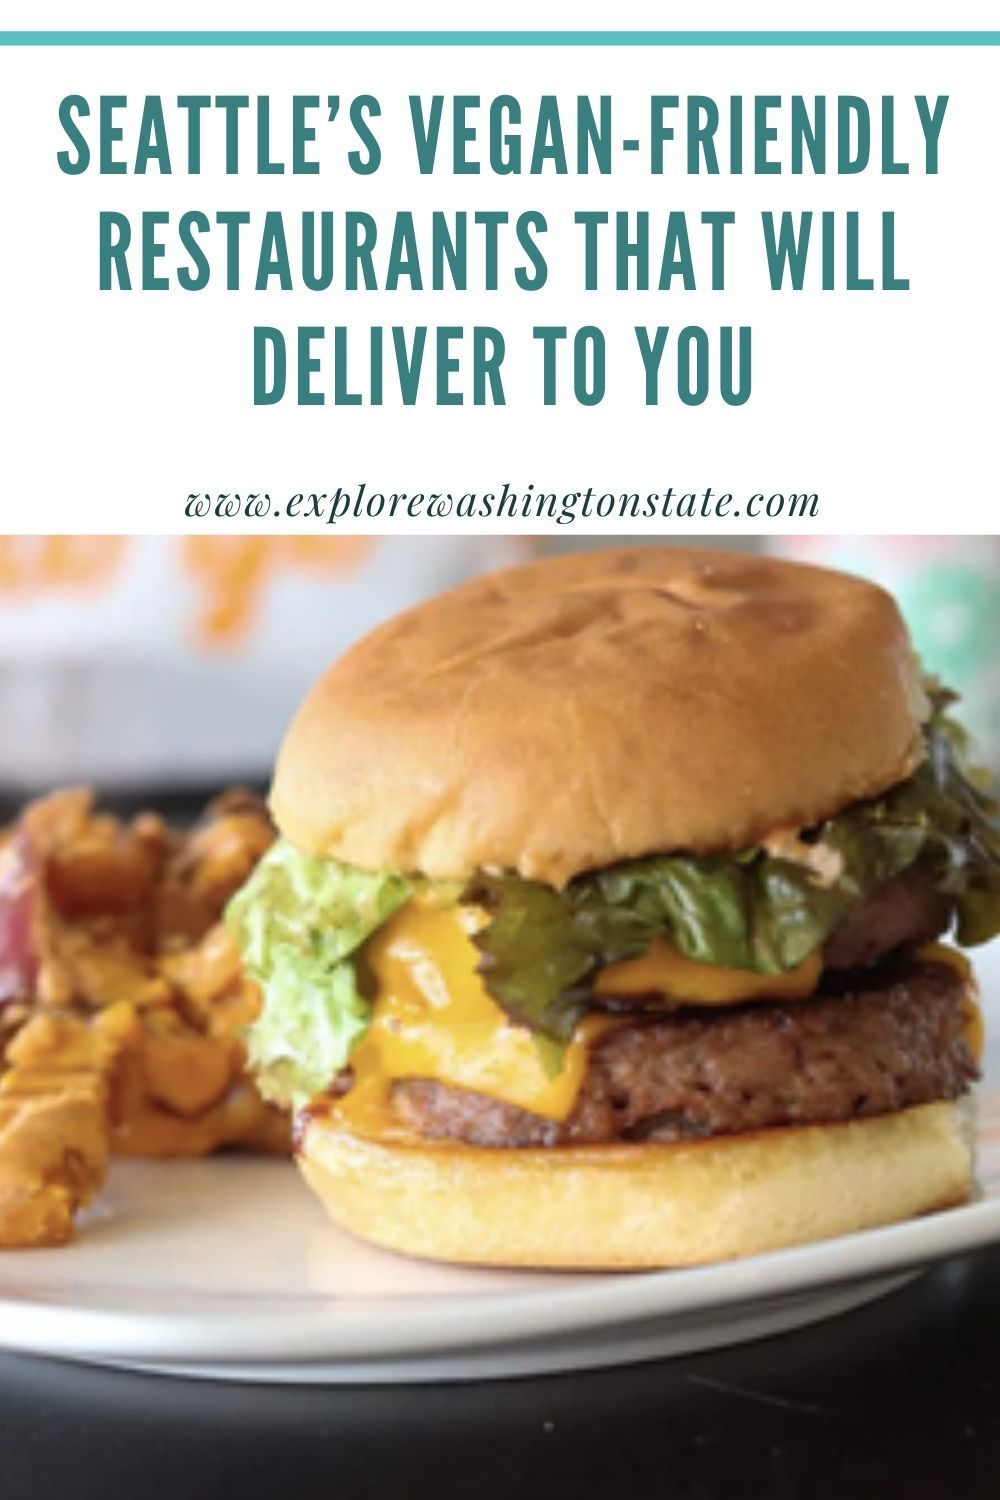 Seattle S Vegan Friendly Restaurants That Will Deliver To You Explore Washington State In 2020 Vegan Friendly Restaurants Vegan Restaurants Vegan Cafe